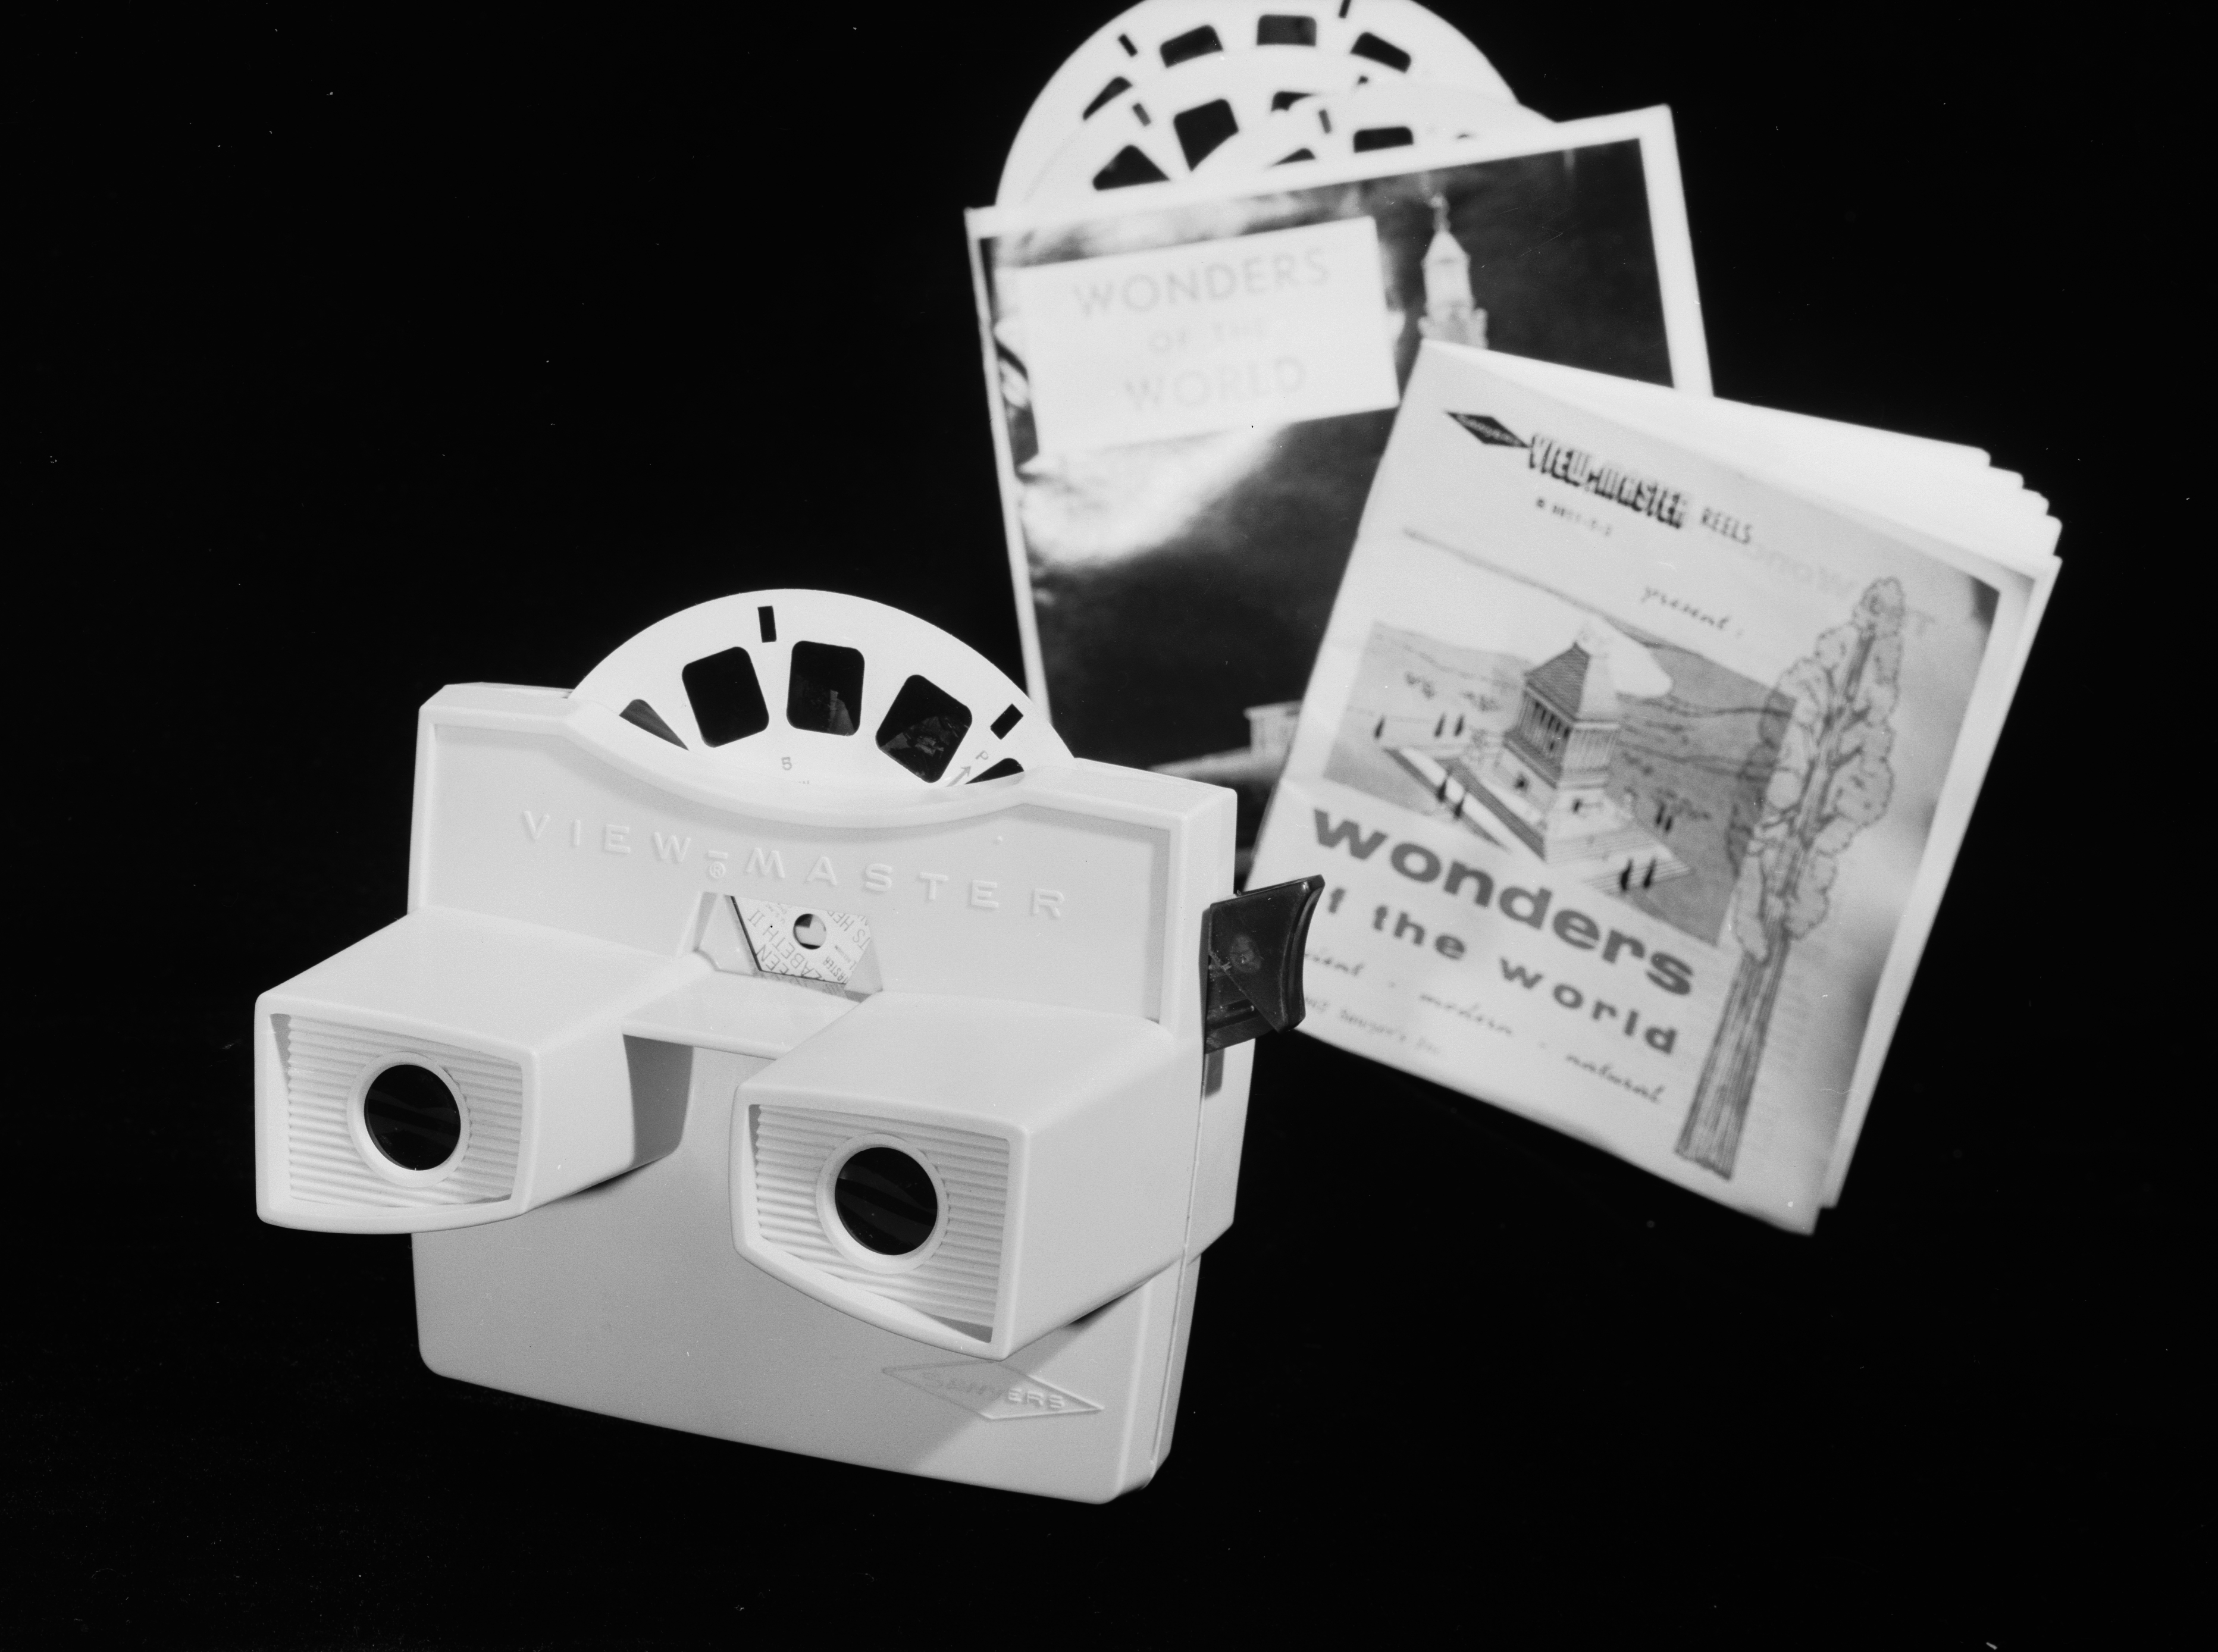 Mattel gives classic View-Master toy a modern VR makeover